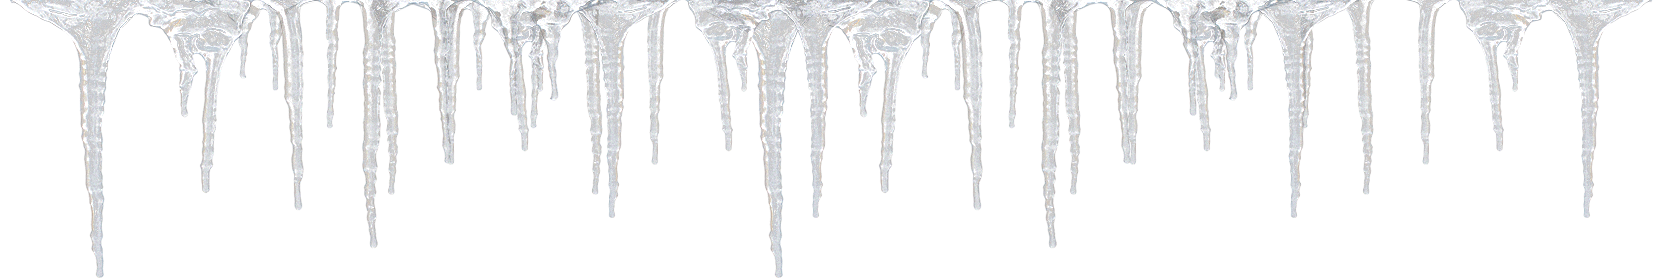 icicles transparent printable